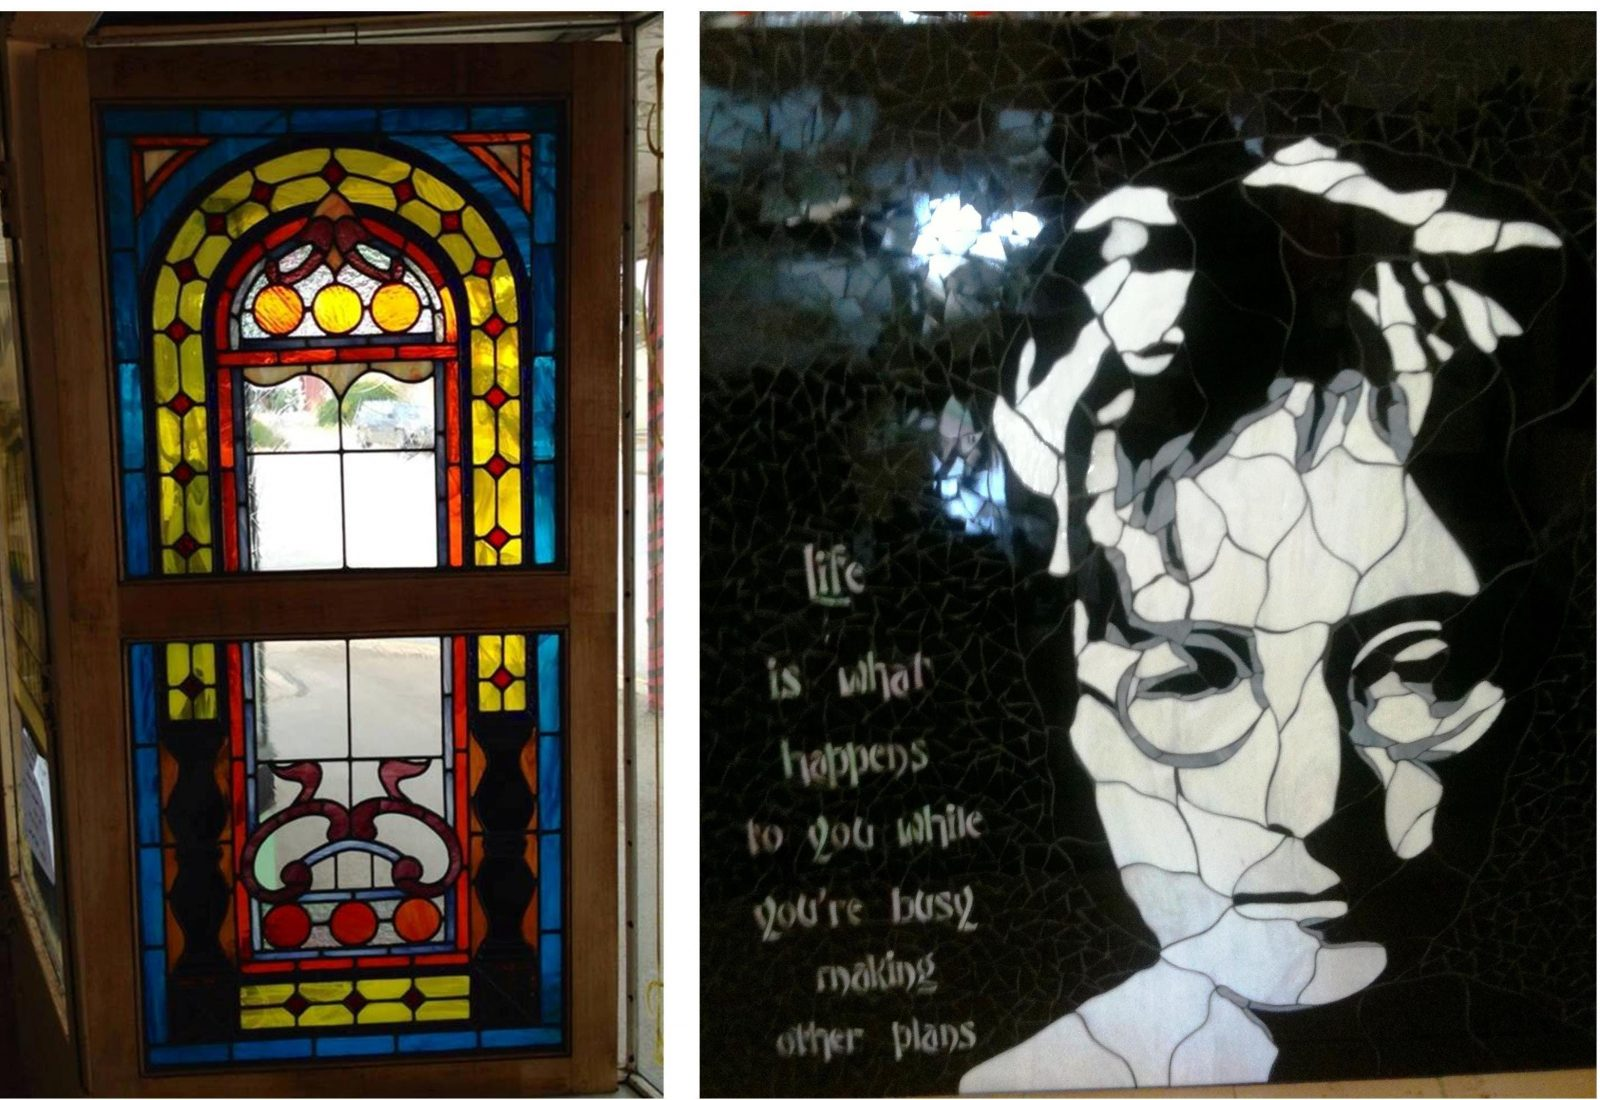 Victorian Fancy Leadlight Window and John Lennon silhouette mosaic with words